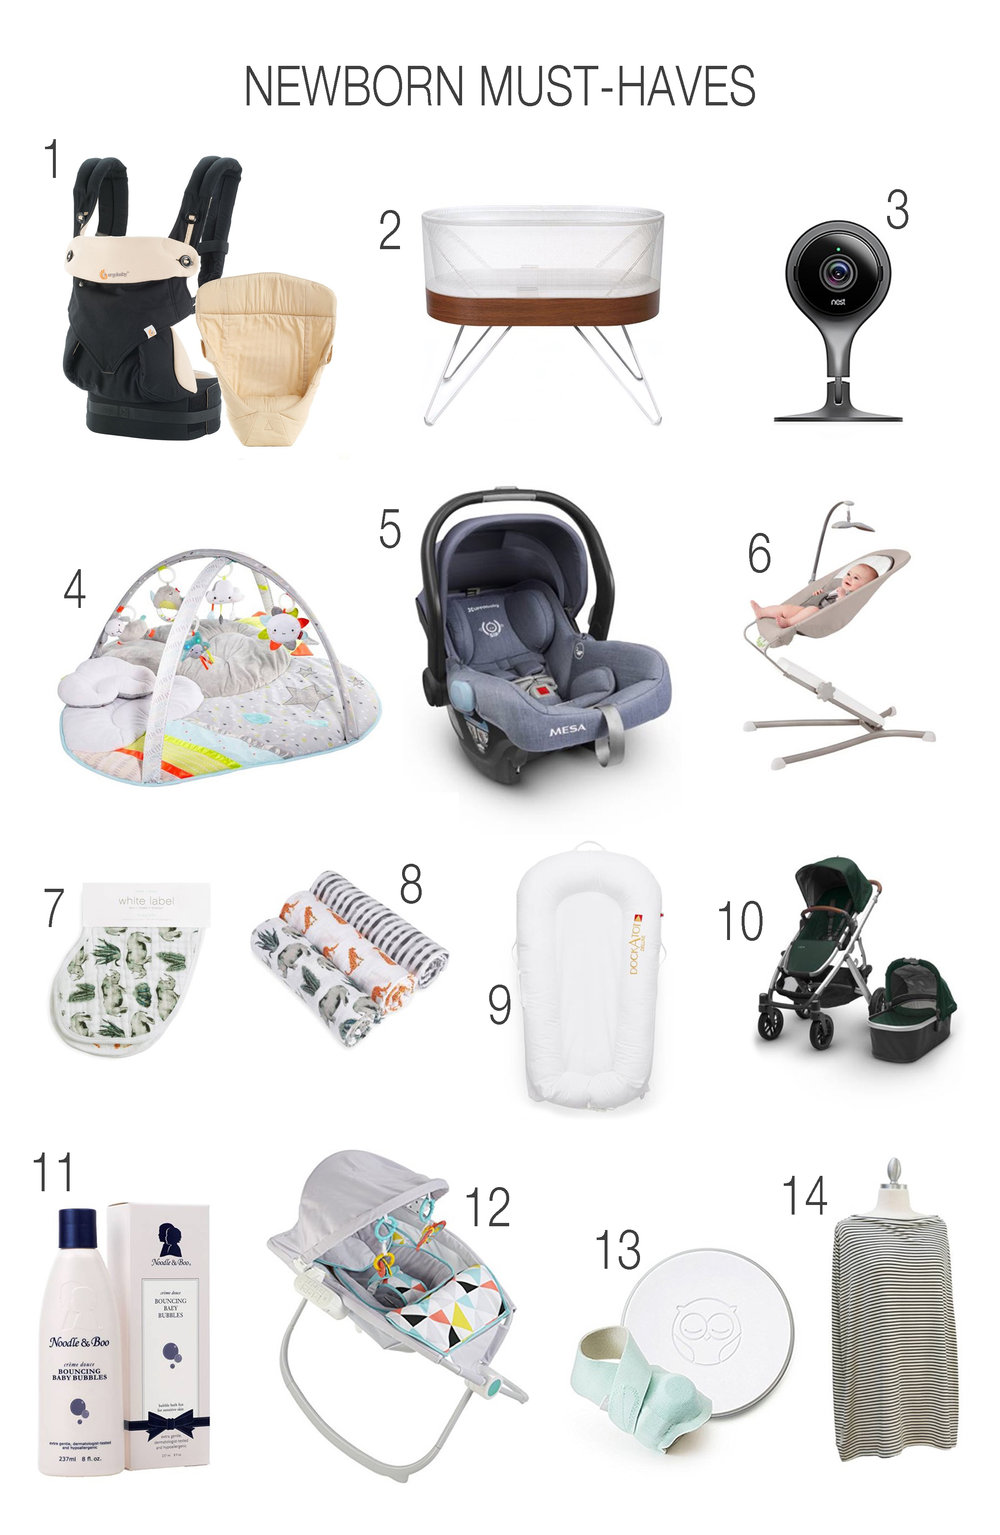 14 Newborn Must Haves by Las Vegas mom bloggers Life of a Sister